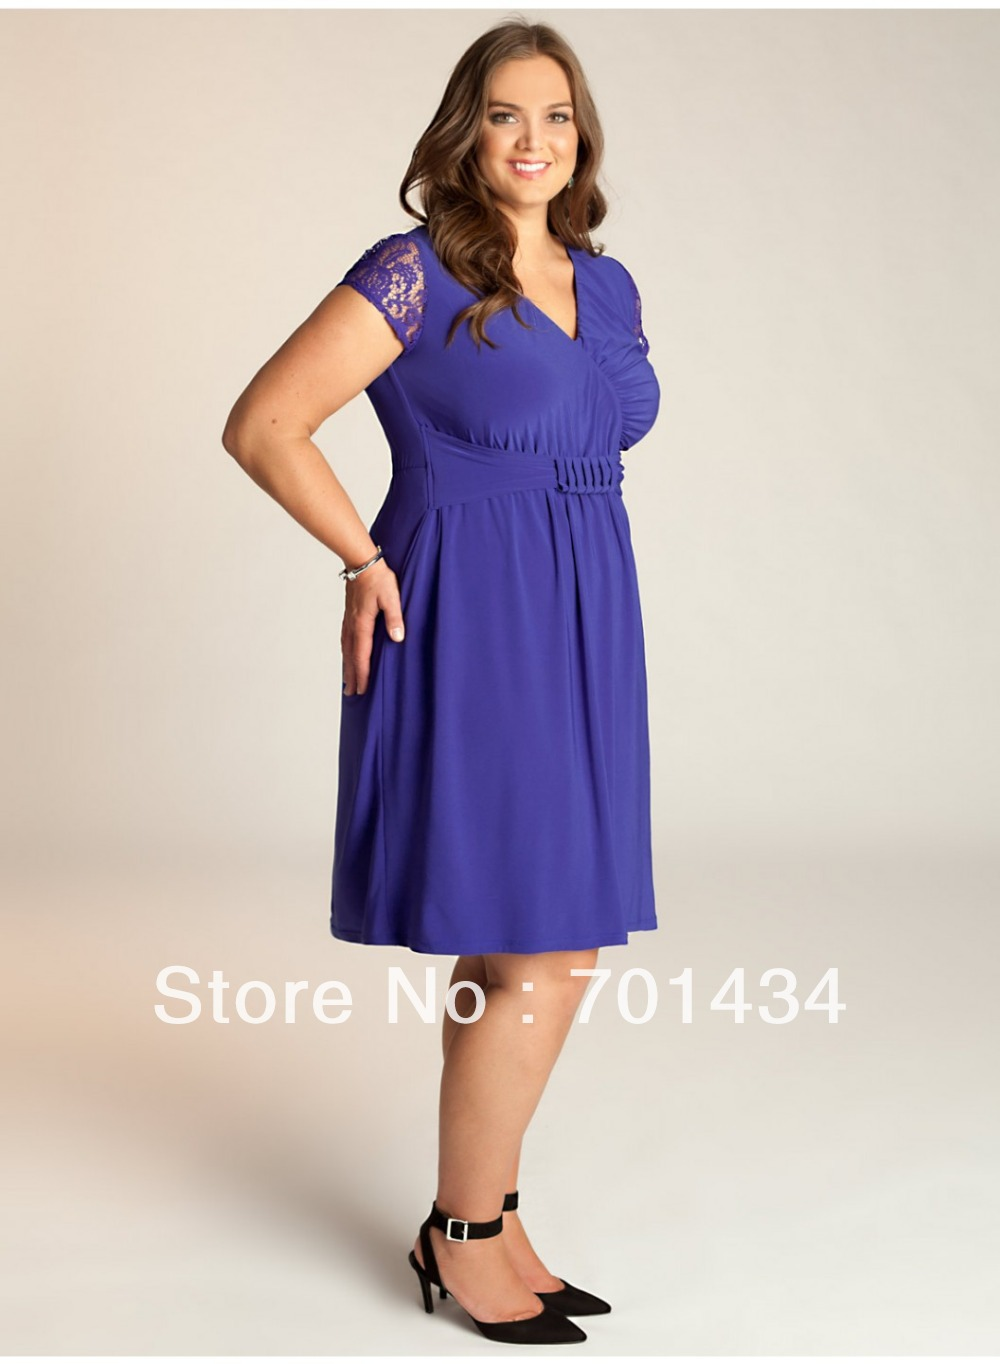 Tea Length Mother of the Bride Dresses in Champaign